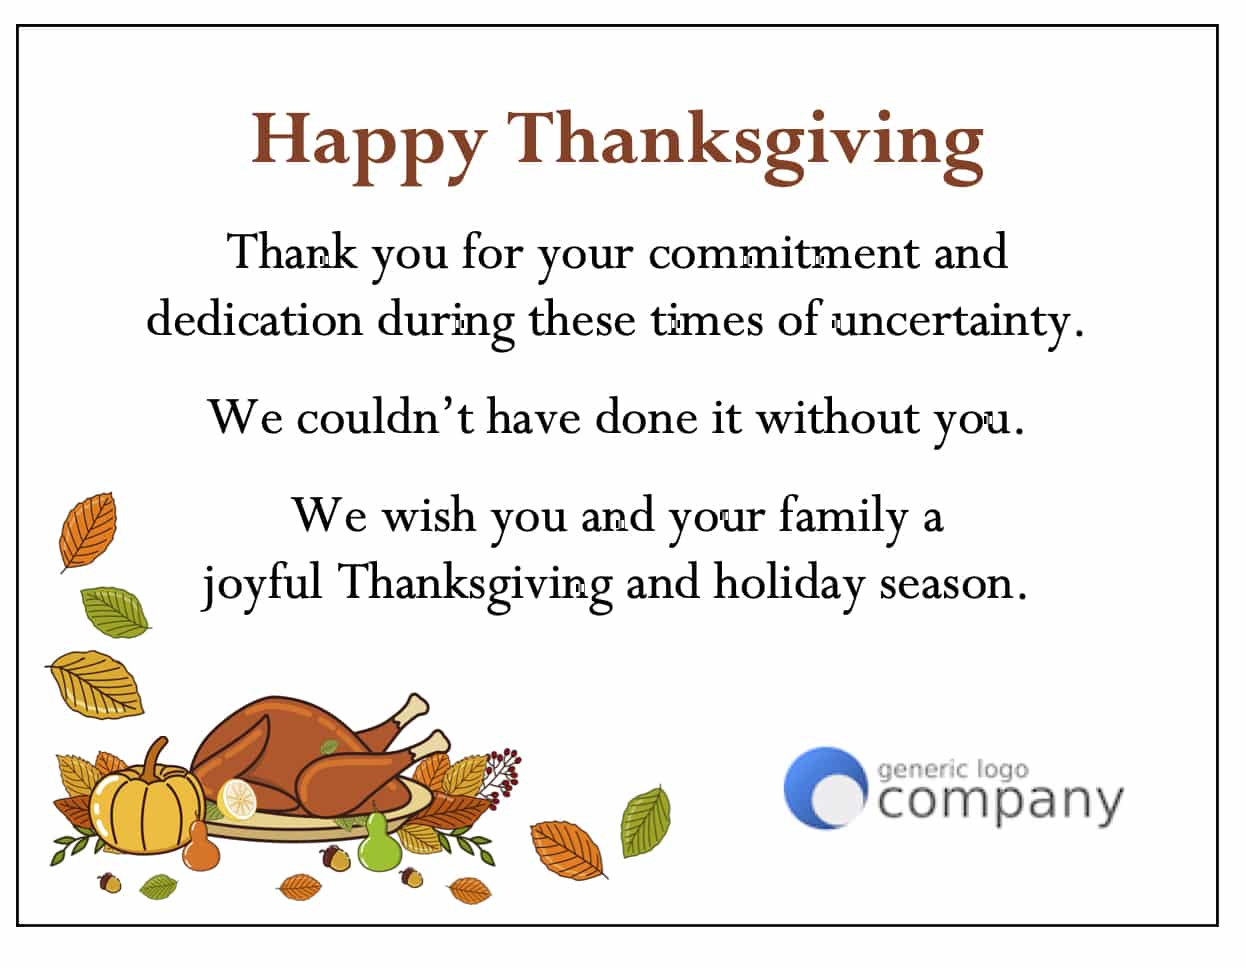 """Happy Thanksgiving"" - Thanksgiving Card Designs"